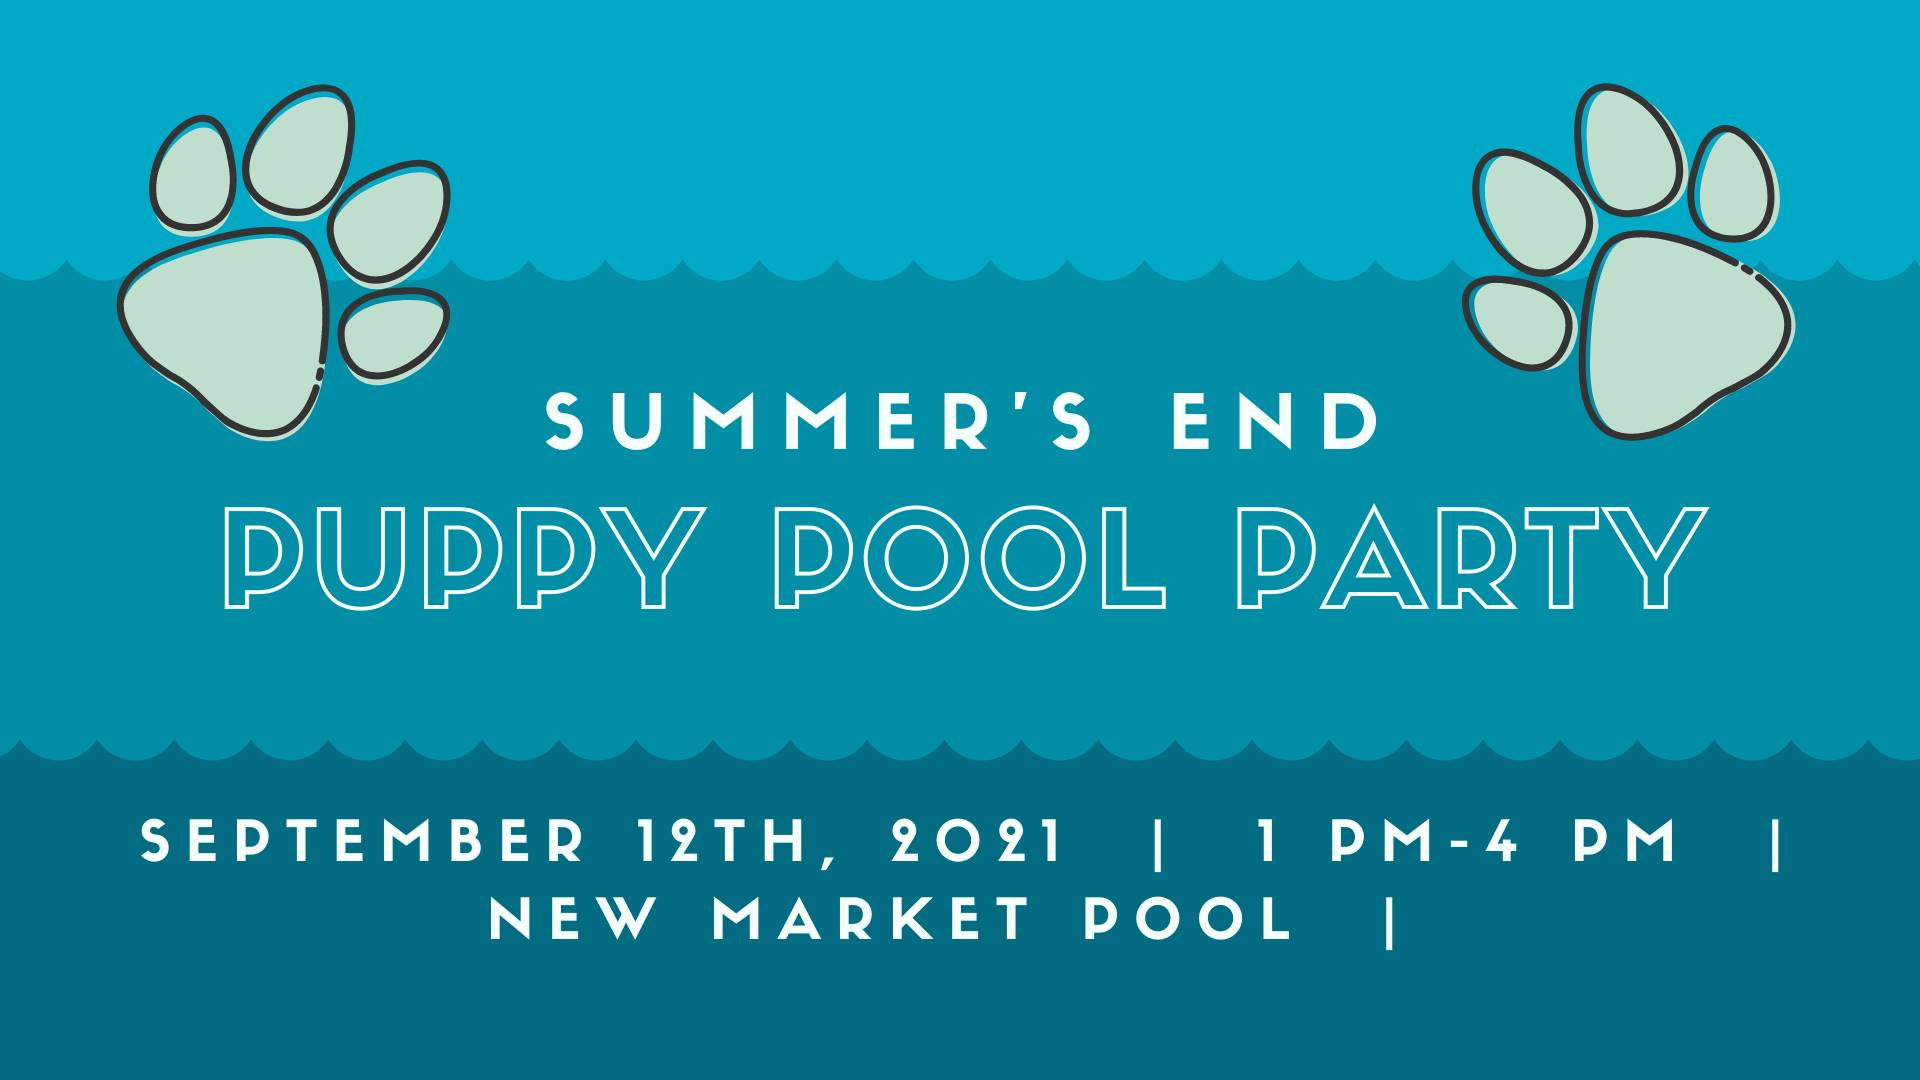 Summer's End Puppy Pool Party